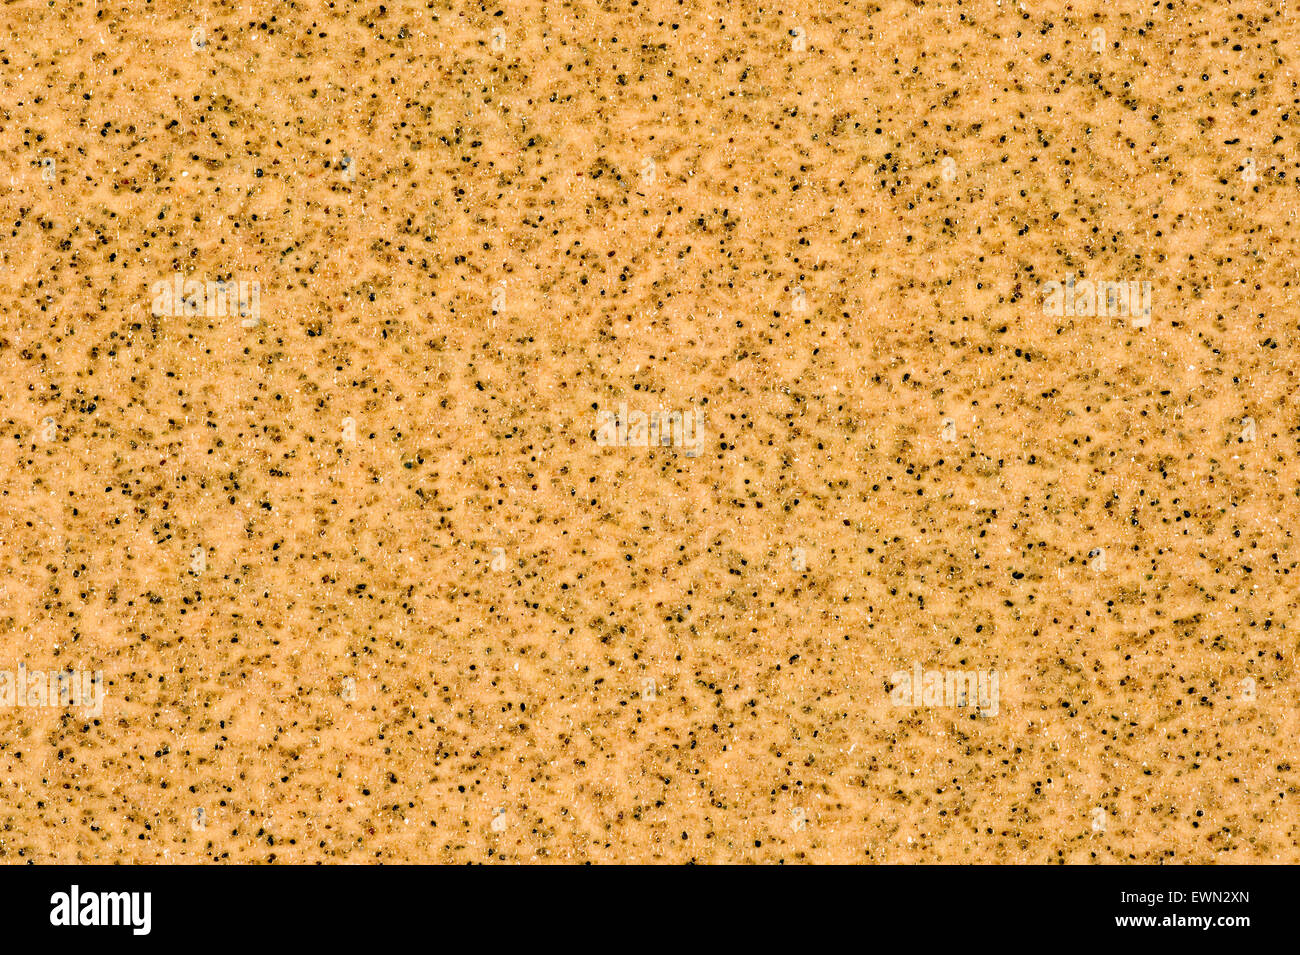 Sandpaper texture  close up background - Stock Image